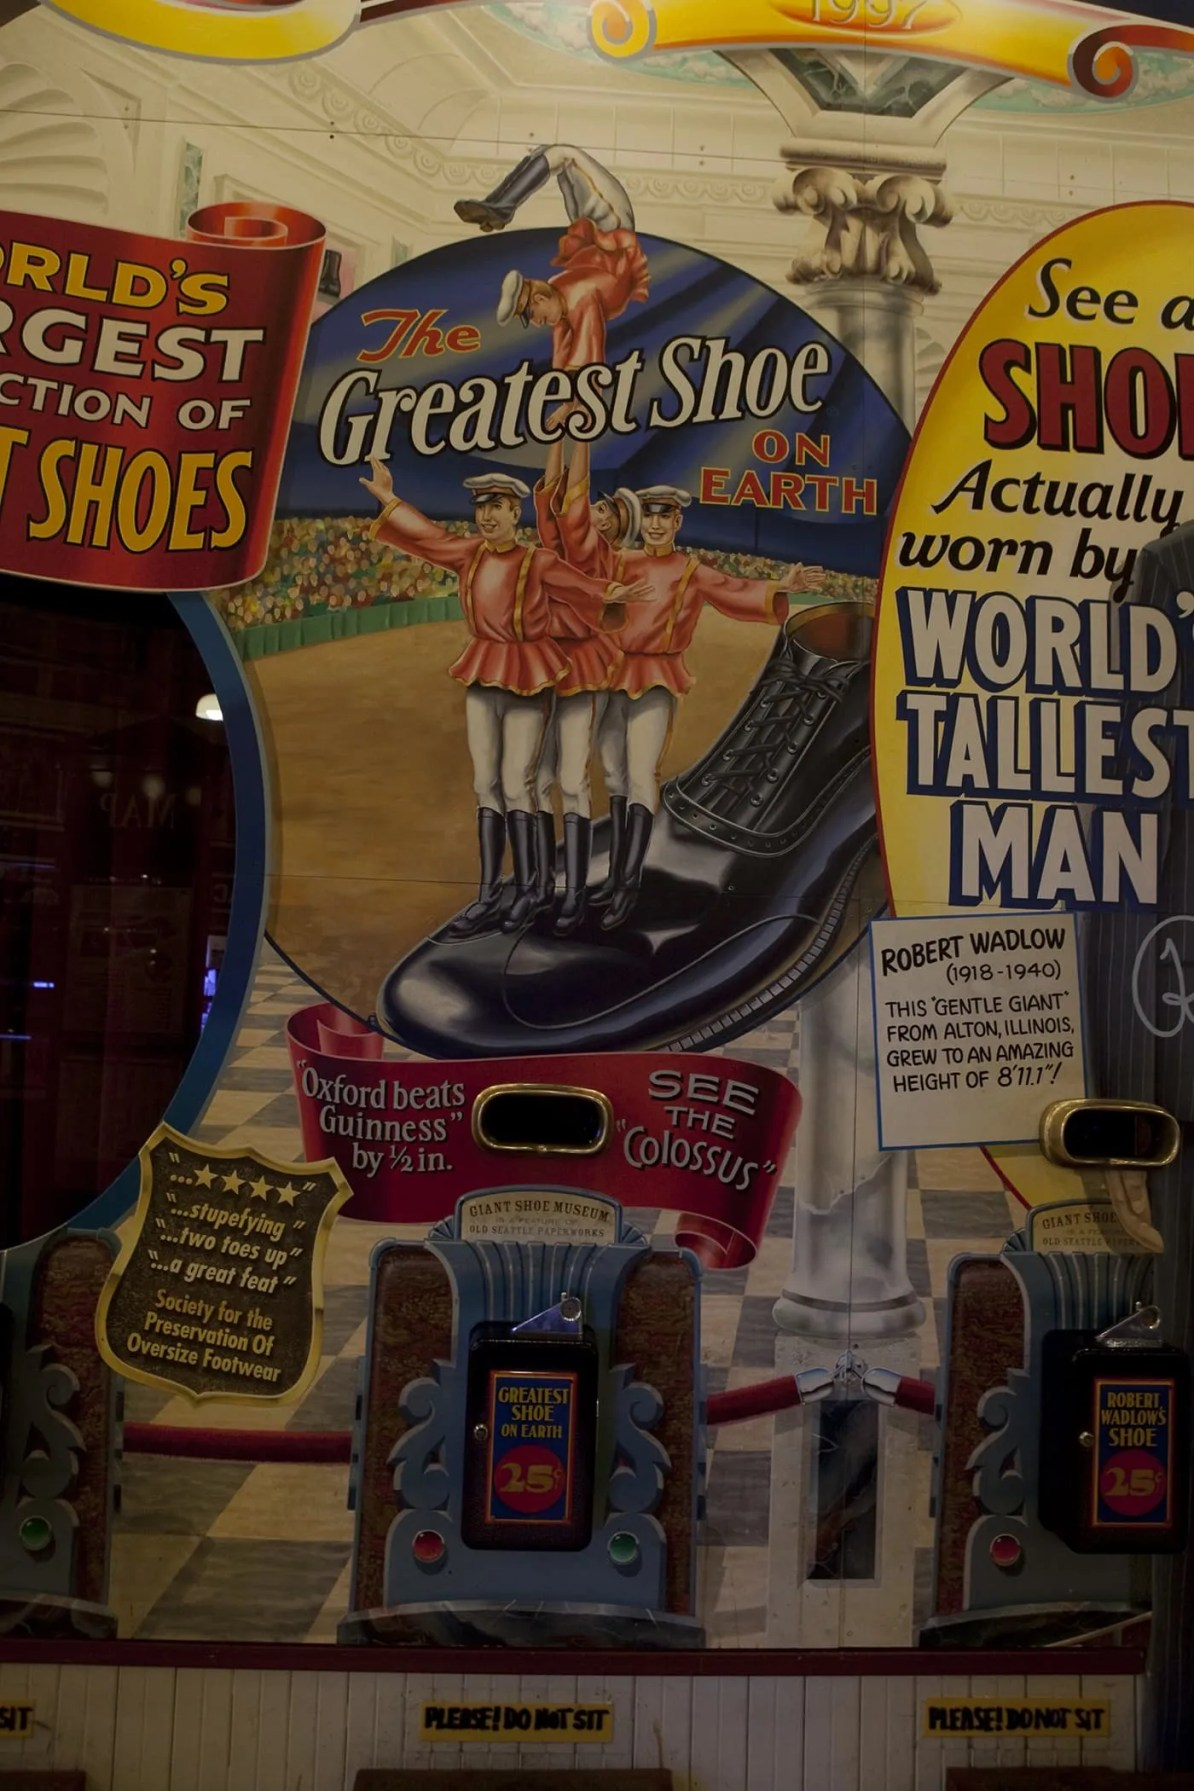 The Greatest Shoe on Earth, the Colossus, at The World Famous Giant Shoe Museum in Pike Place Market in Seattle, Washington.